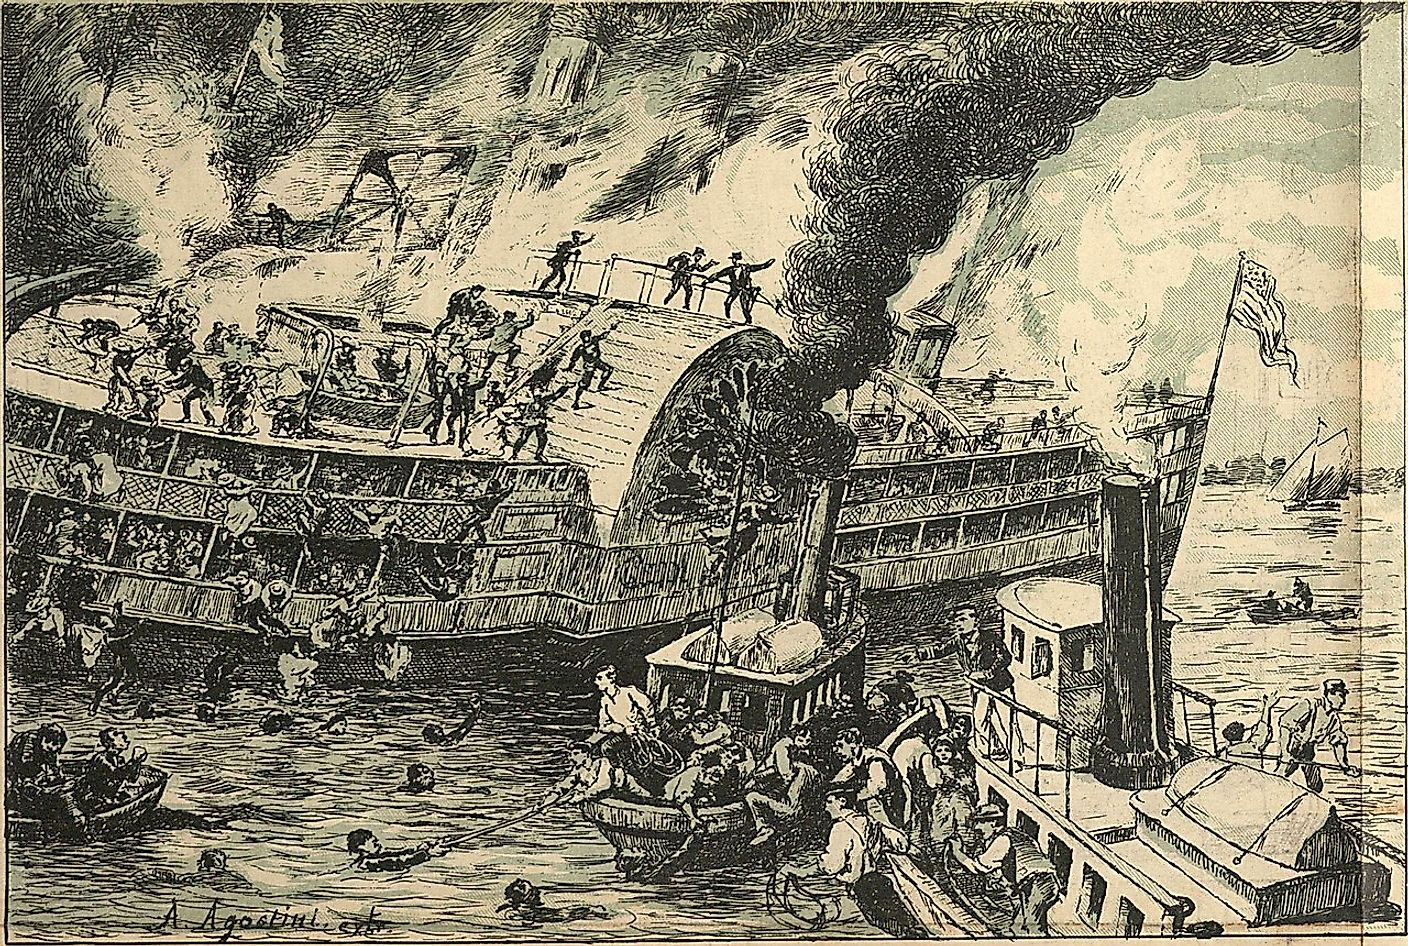 The great catastrophe of the passenger steamboat General Slocum (Angelo Agostini, O Malho, 1904).